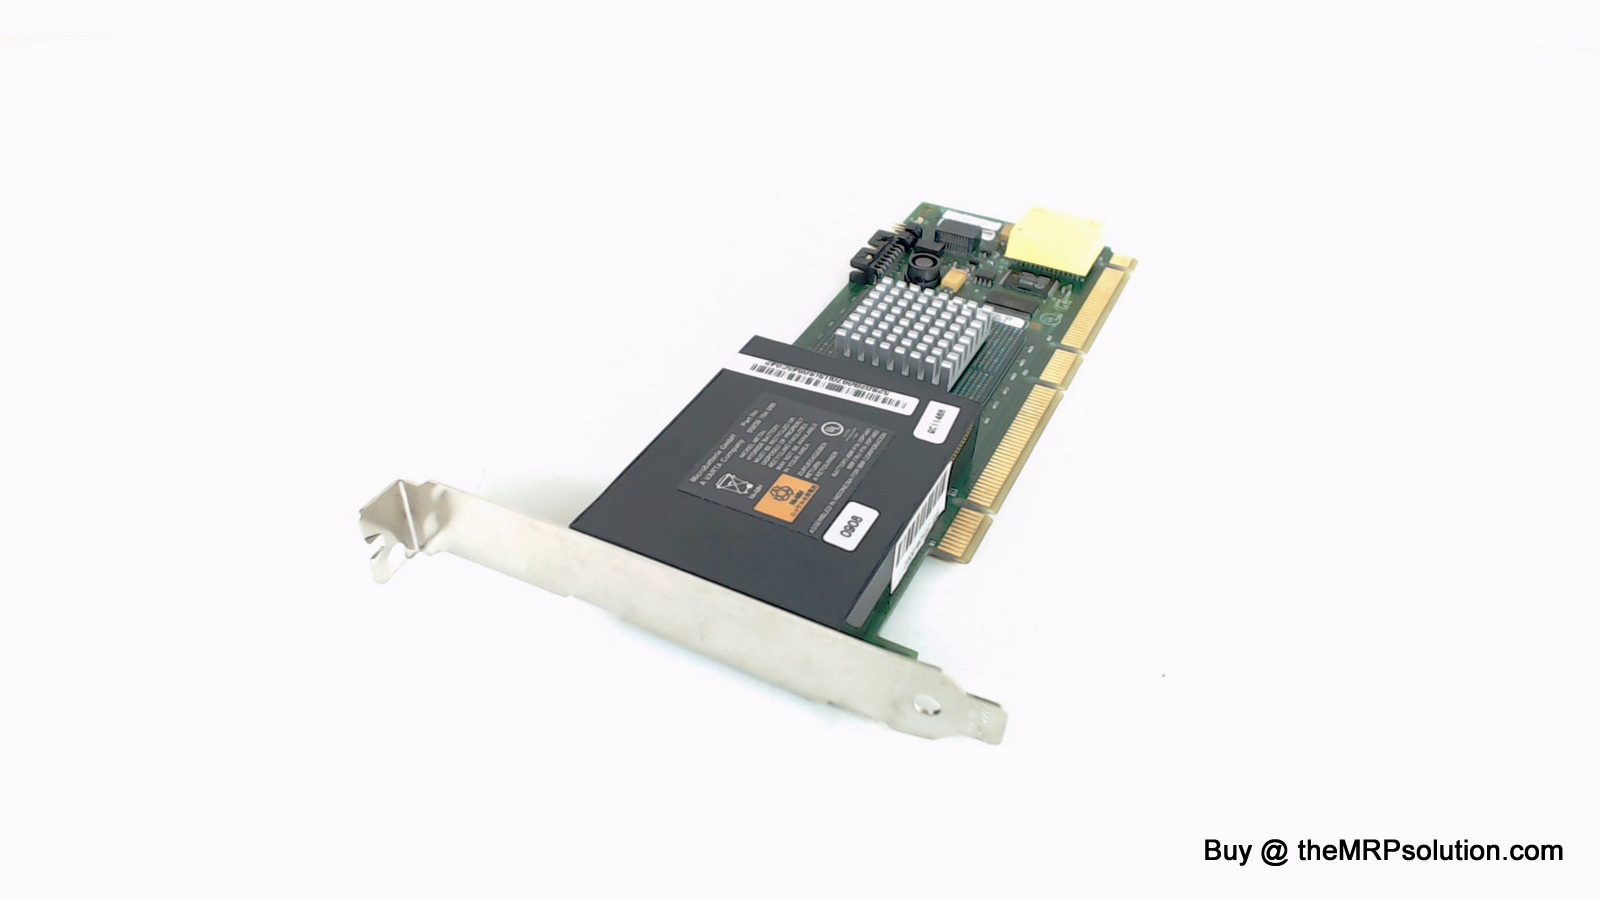 IBM 02R0968 SERVERAID-5I SCSI CONTROLLER Refurbished